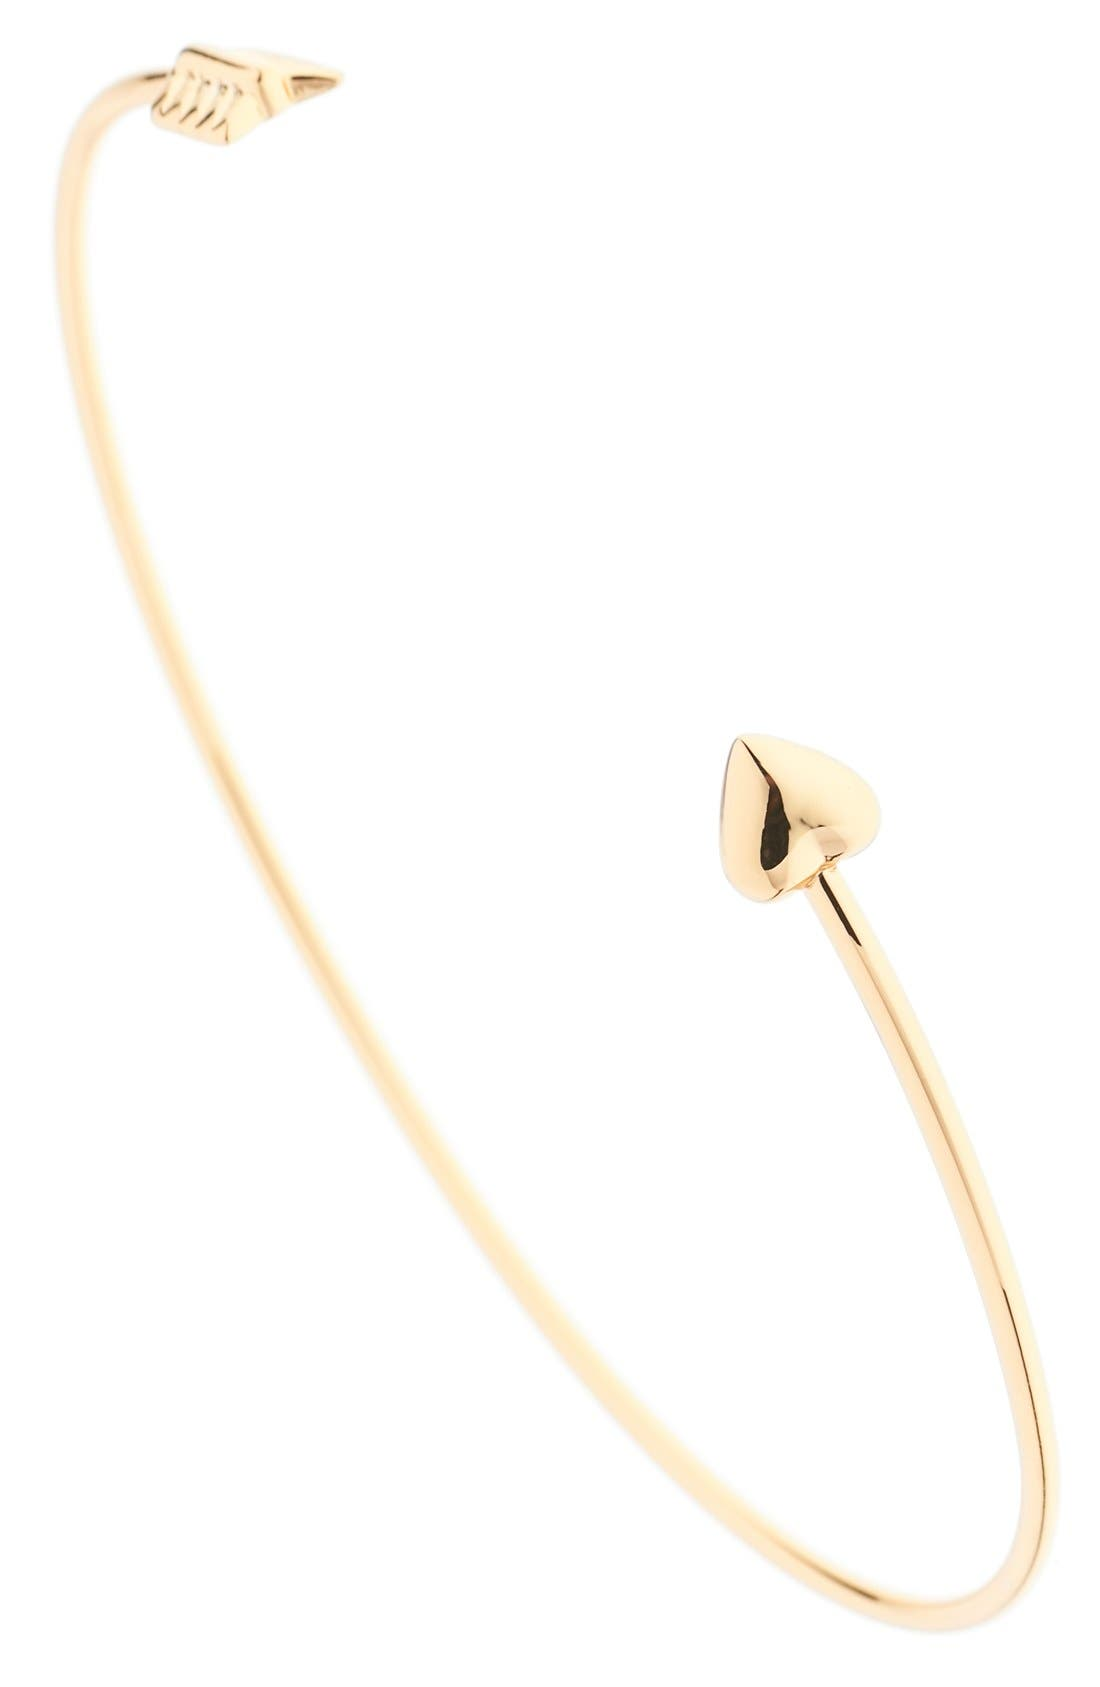 'Cupid's Arrow' Open Cuff,                             Alternate thumbnail 2, color,                             Gold